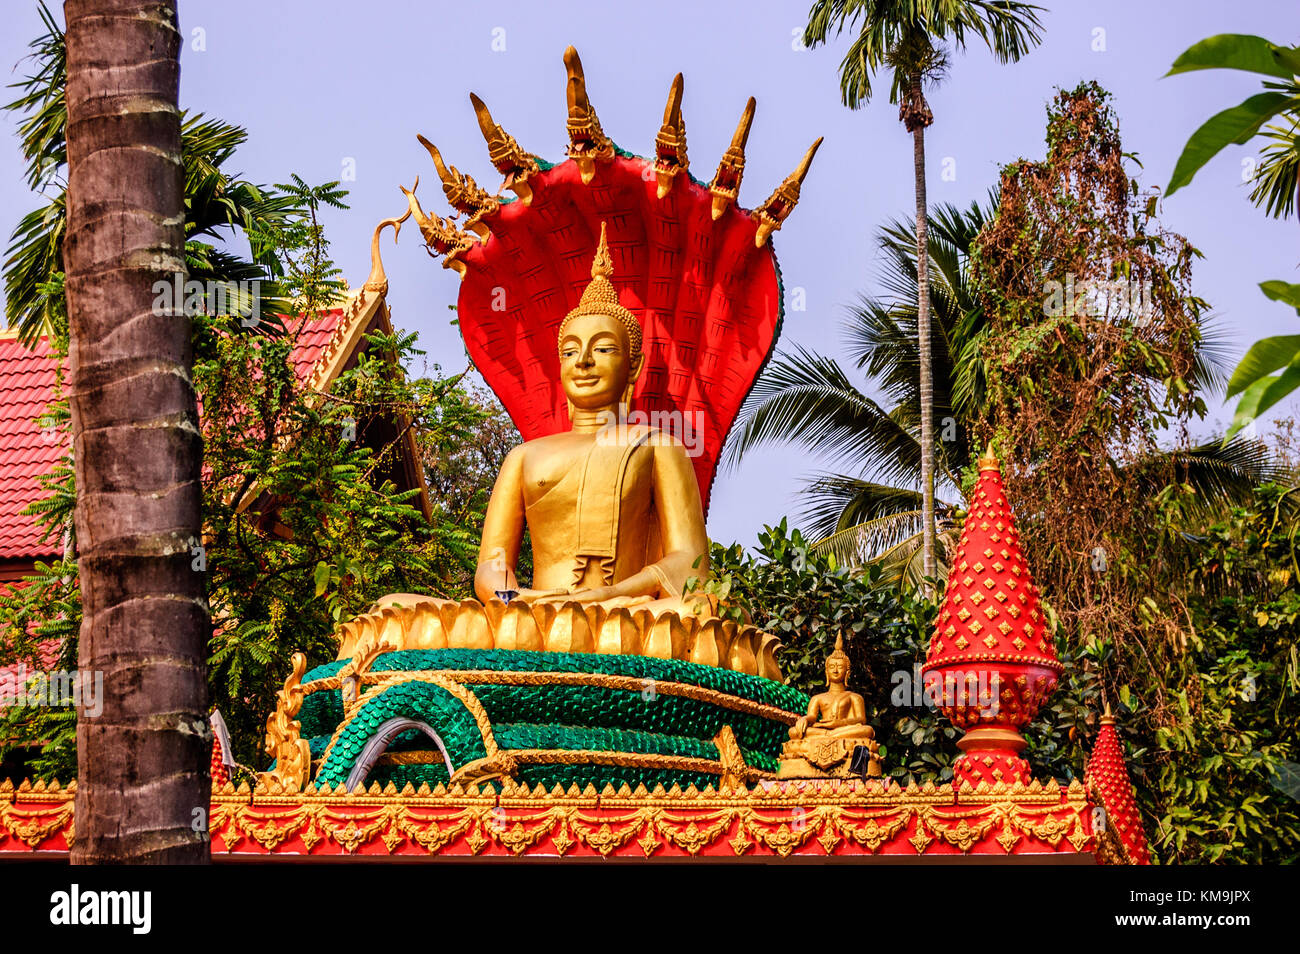 Vientiane, Laos - March 16, 2013: Golden Buddha statue seated on lotus flower at Buddhist temple Wat That Luang - Stock Image